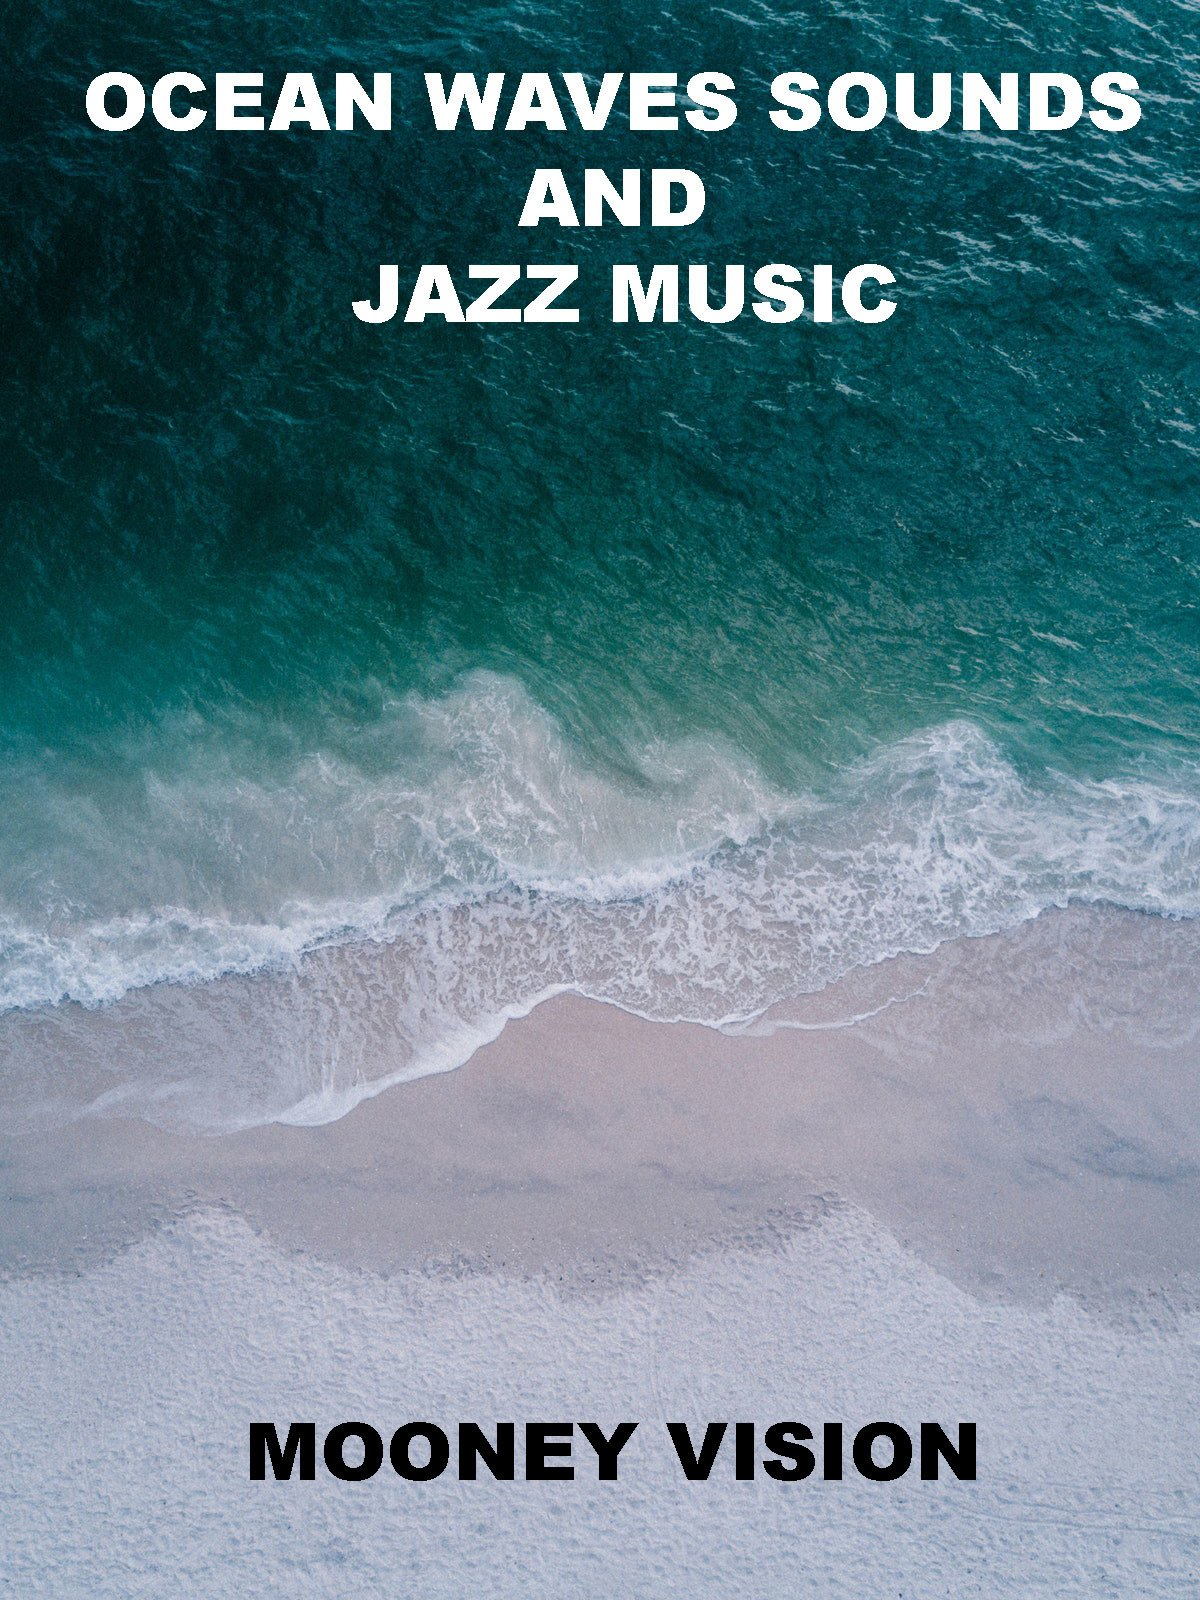 Ocean Waves Sounds And Jazz Music